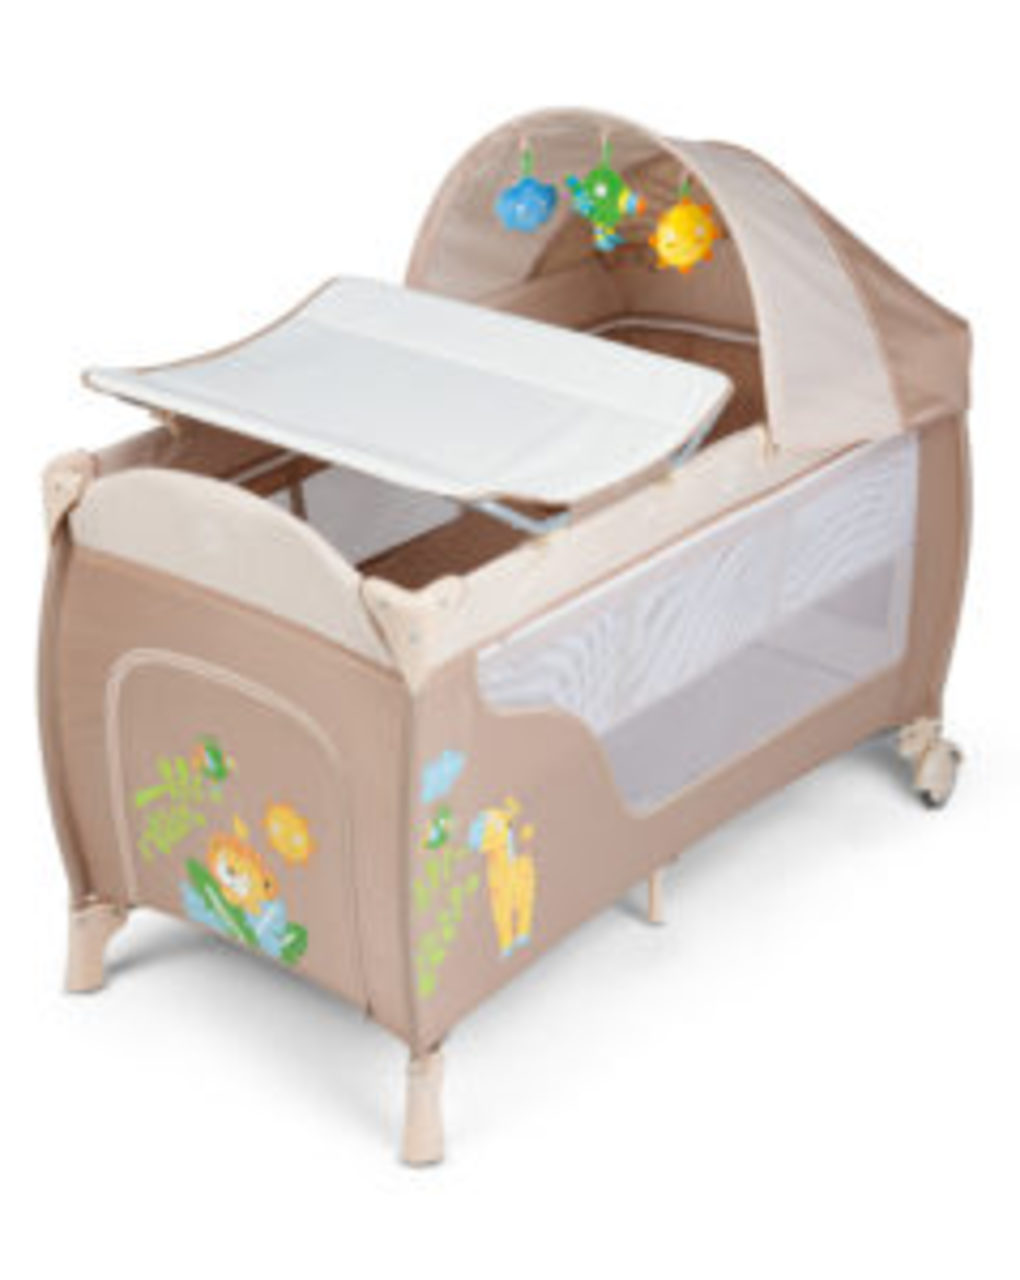 Lettino jungle friends deluxe beige - Giordani